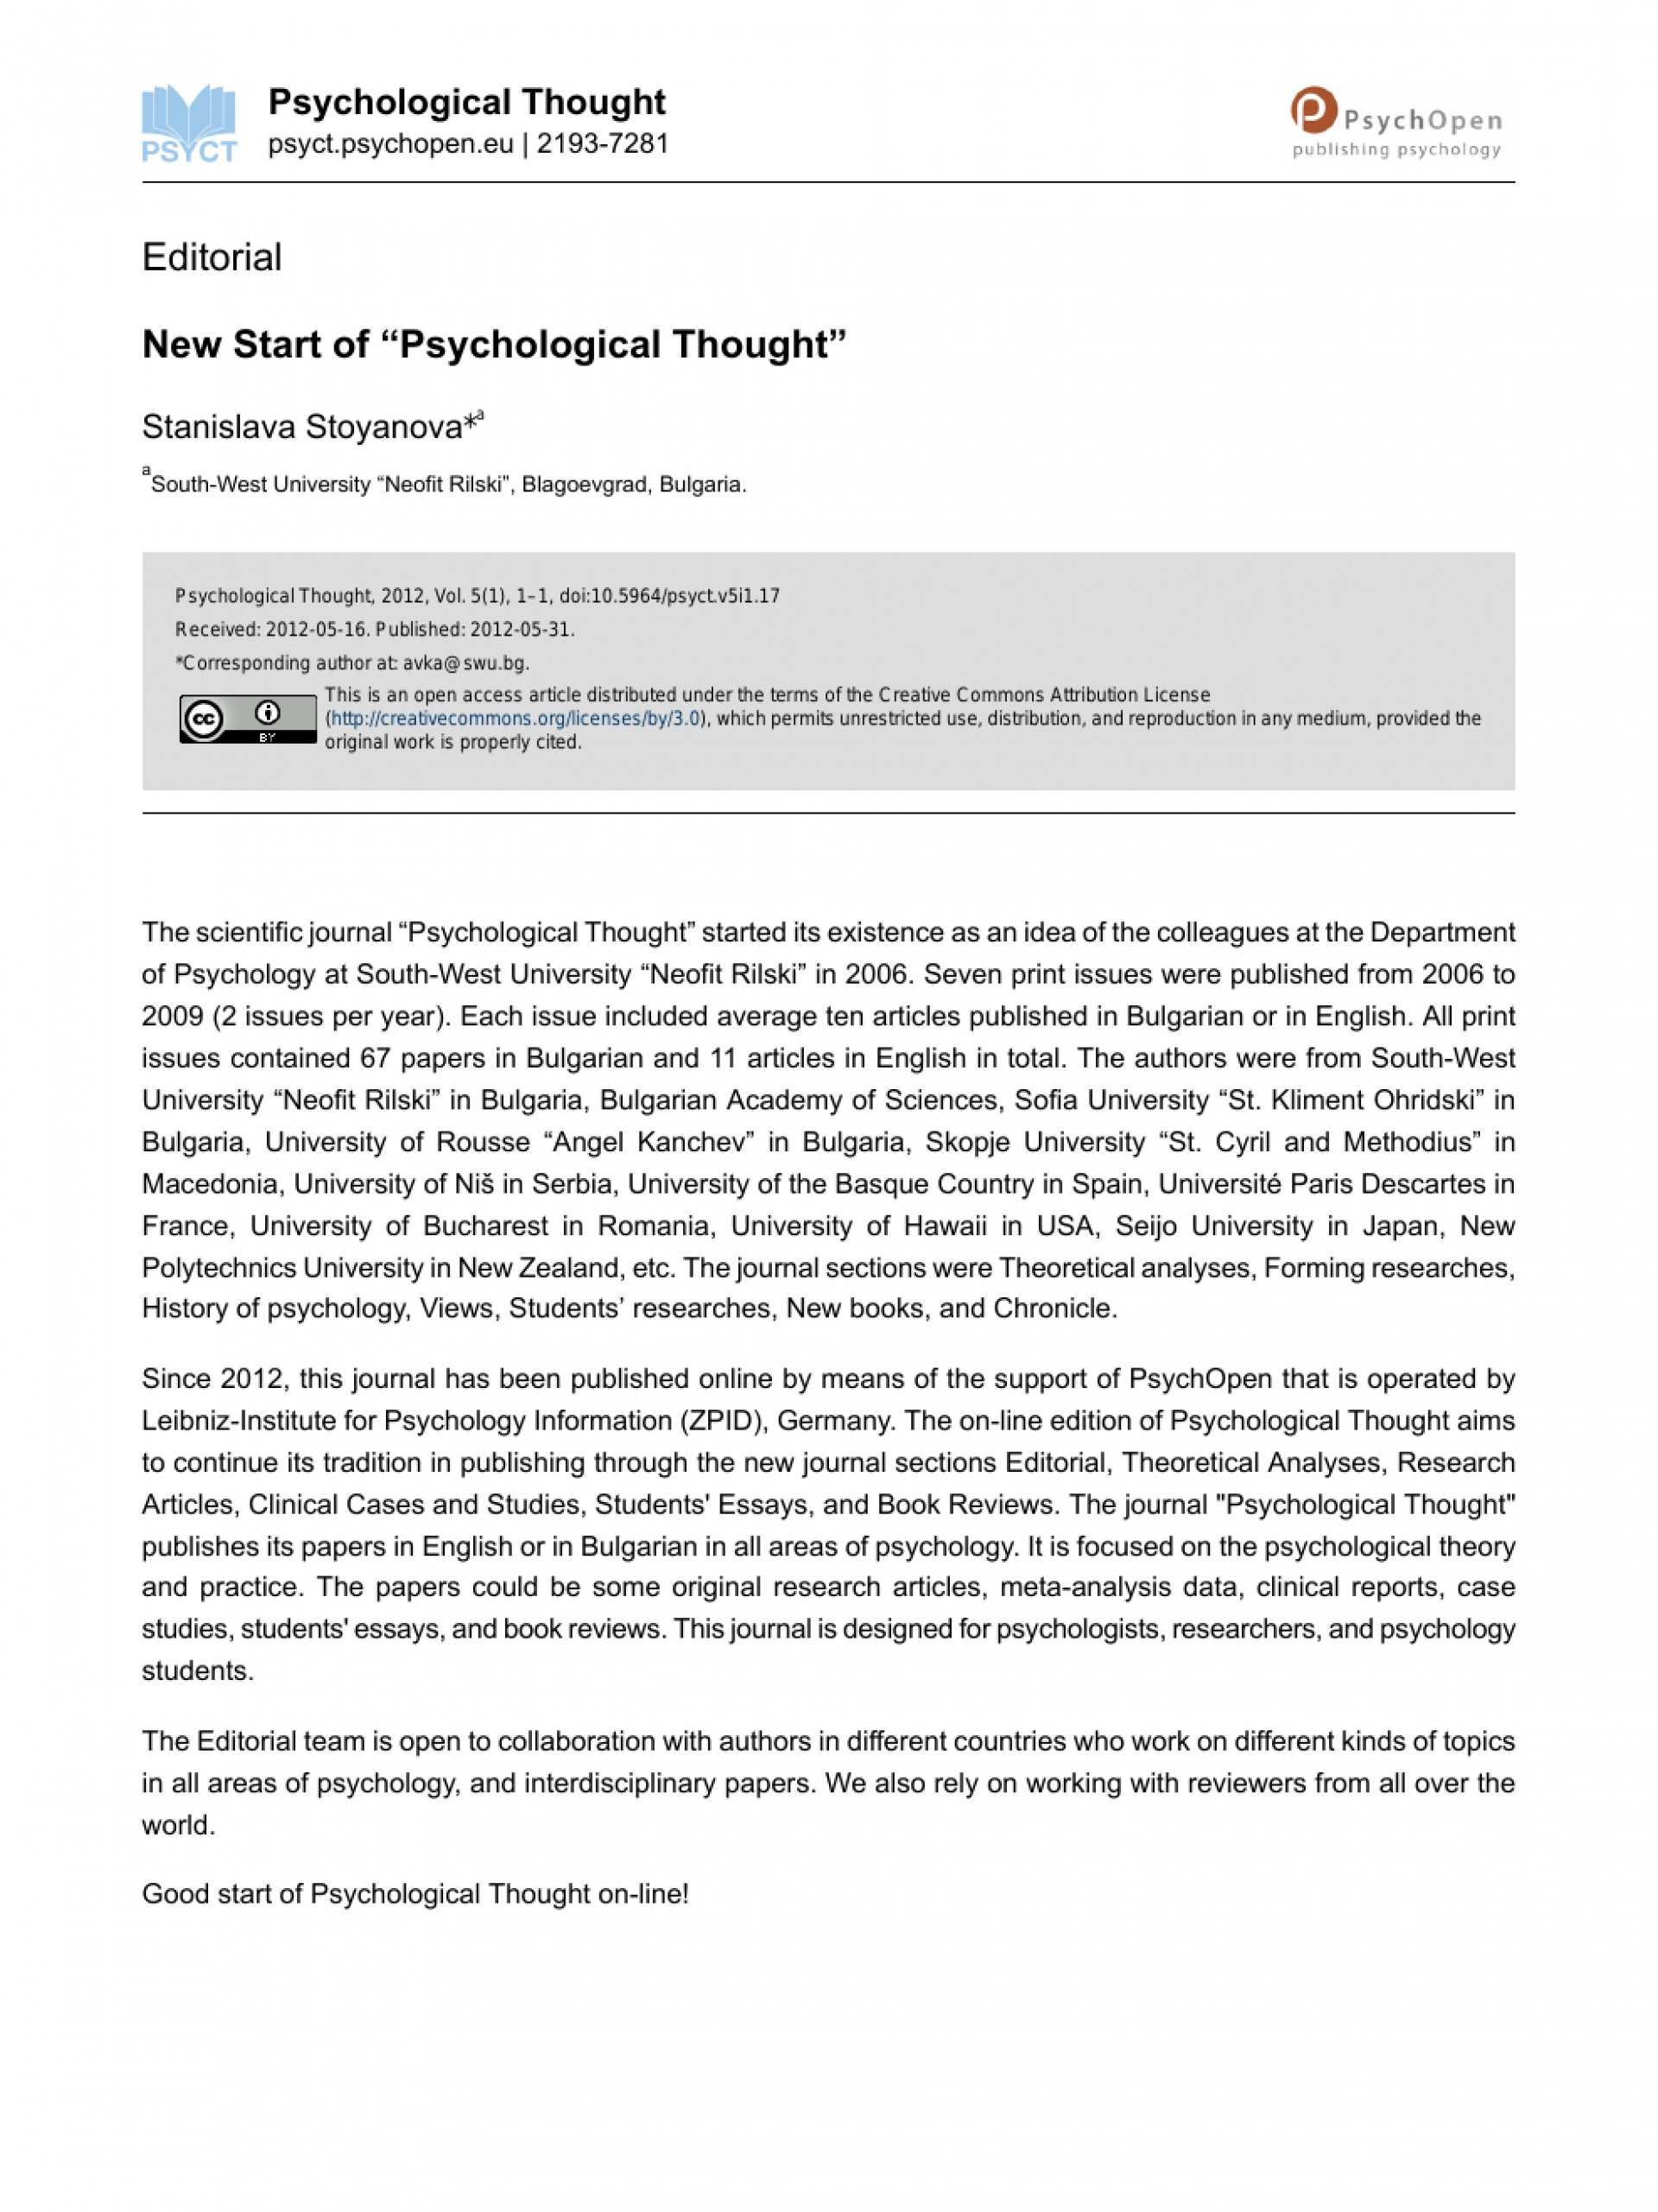 009 Research Paper Latest Papers On Psychology Fearsome Topics For Criminal In Forensic 1920